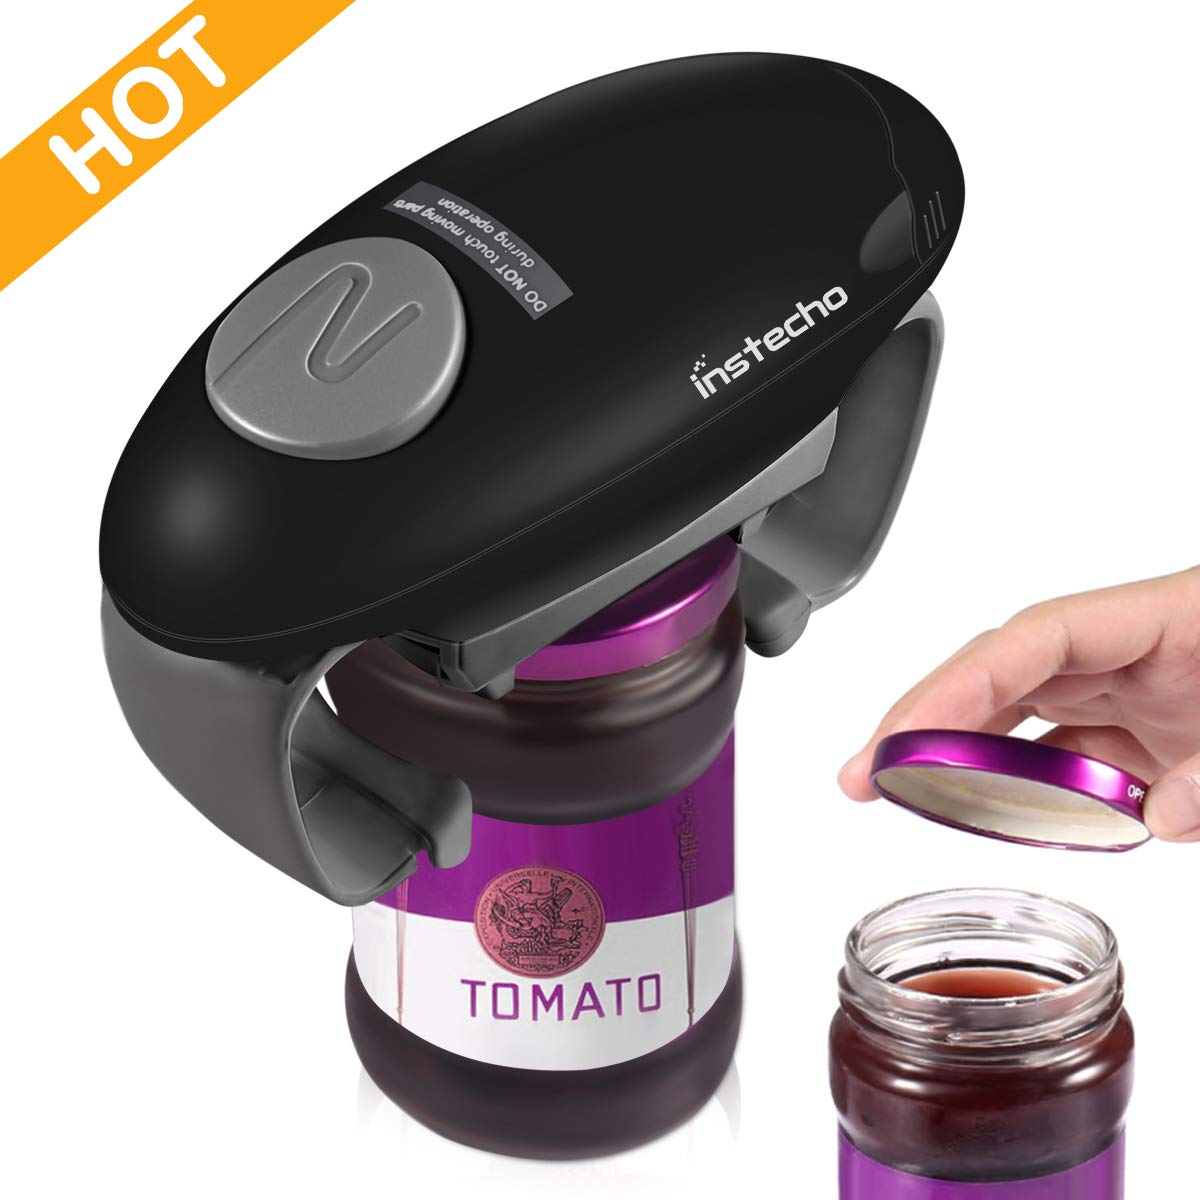 Automatic Jar Bottle Opener, Best Kitchen Tool For Women, Chef, Elderly and Arthritis Sufferers - Open any Jar or Bottle (Black-2019)